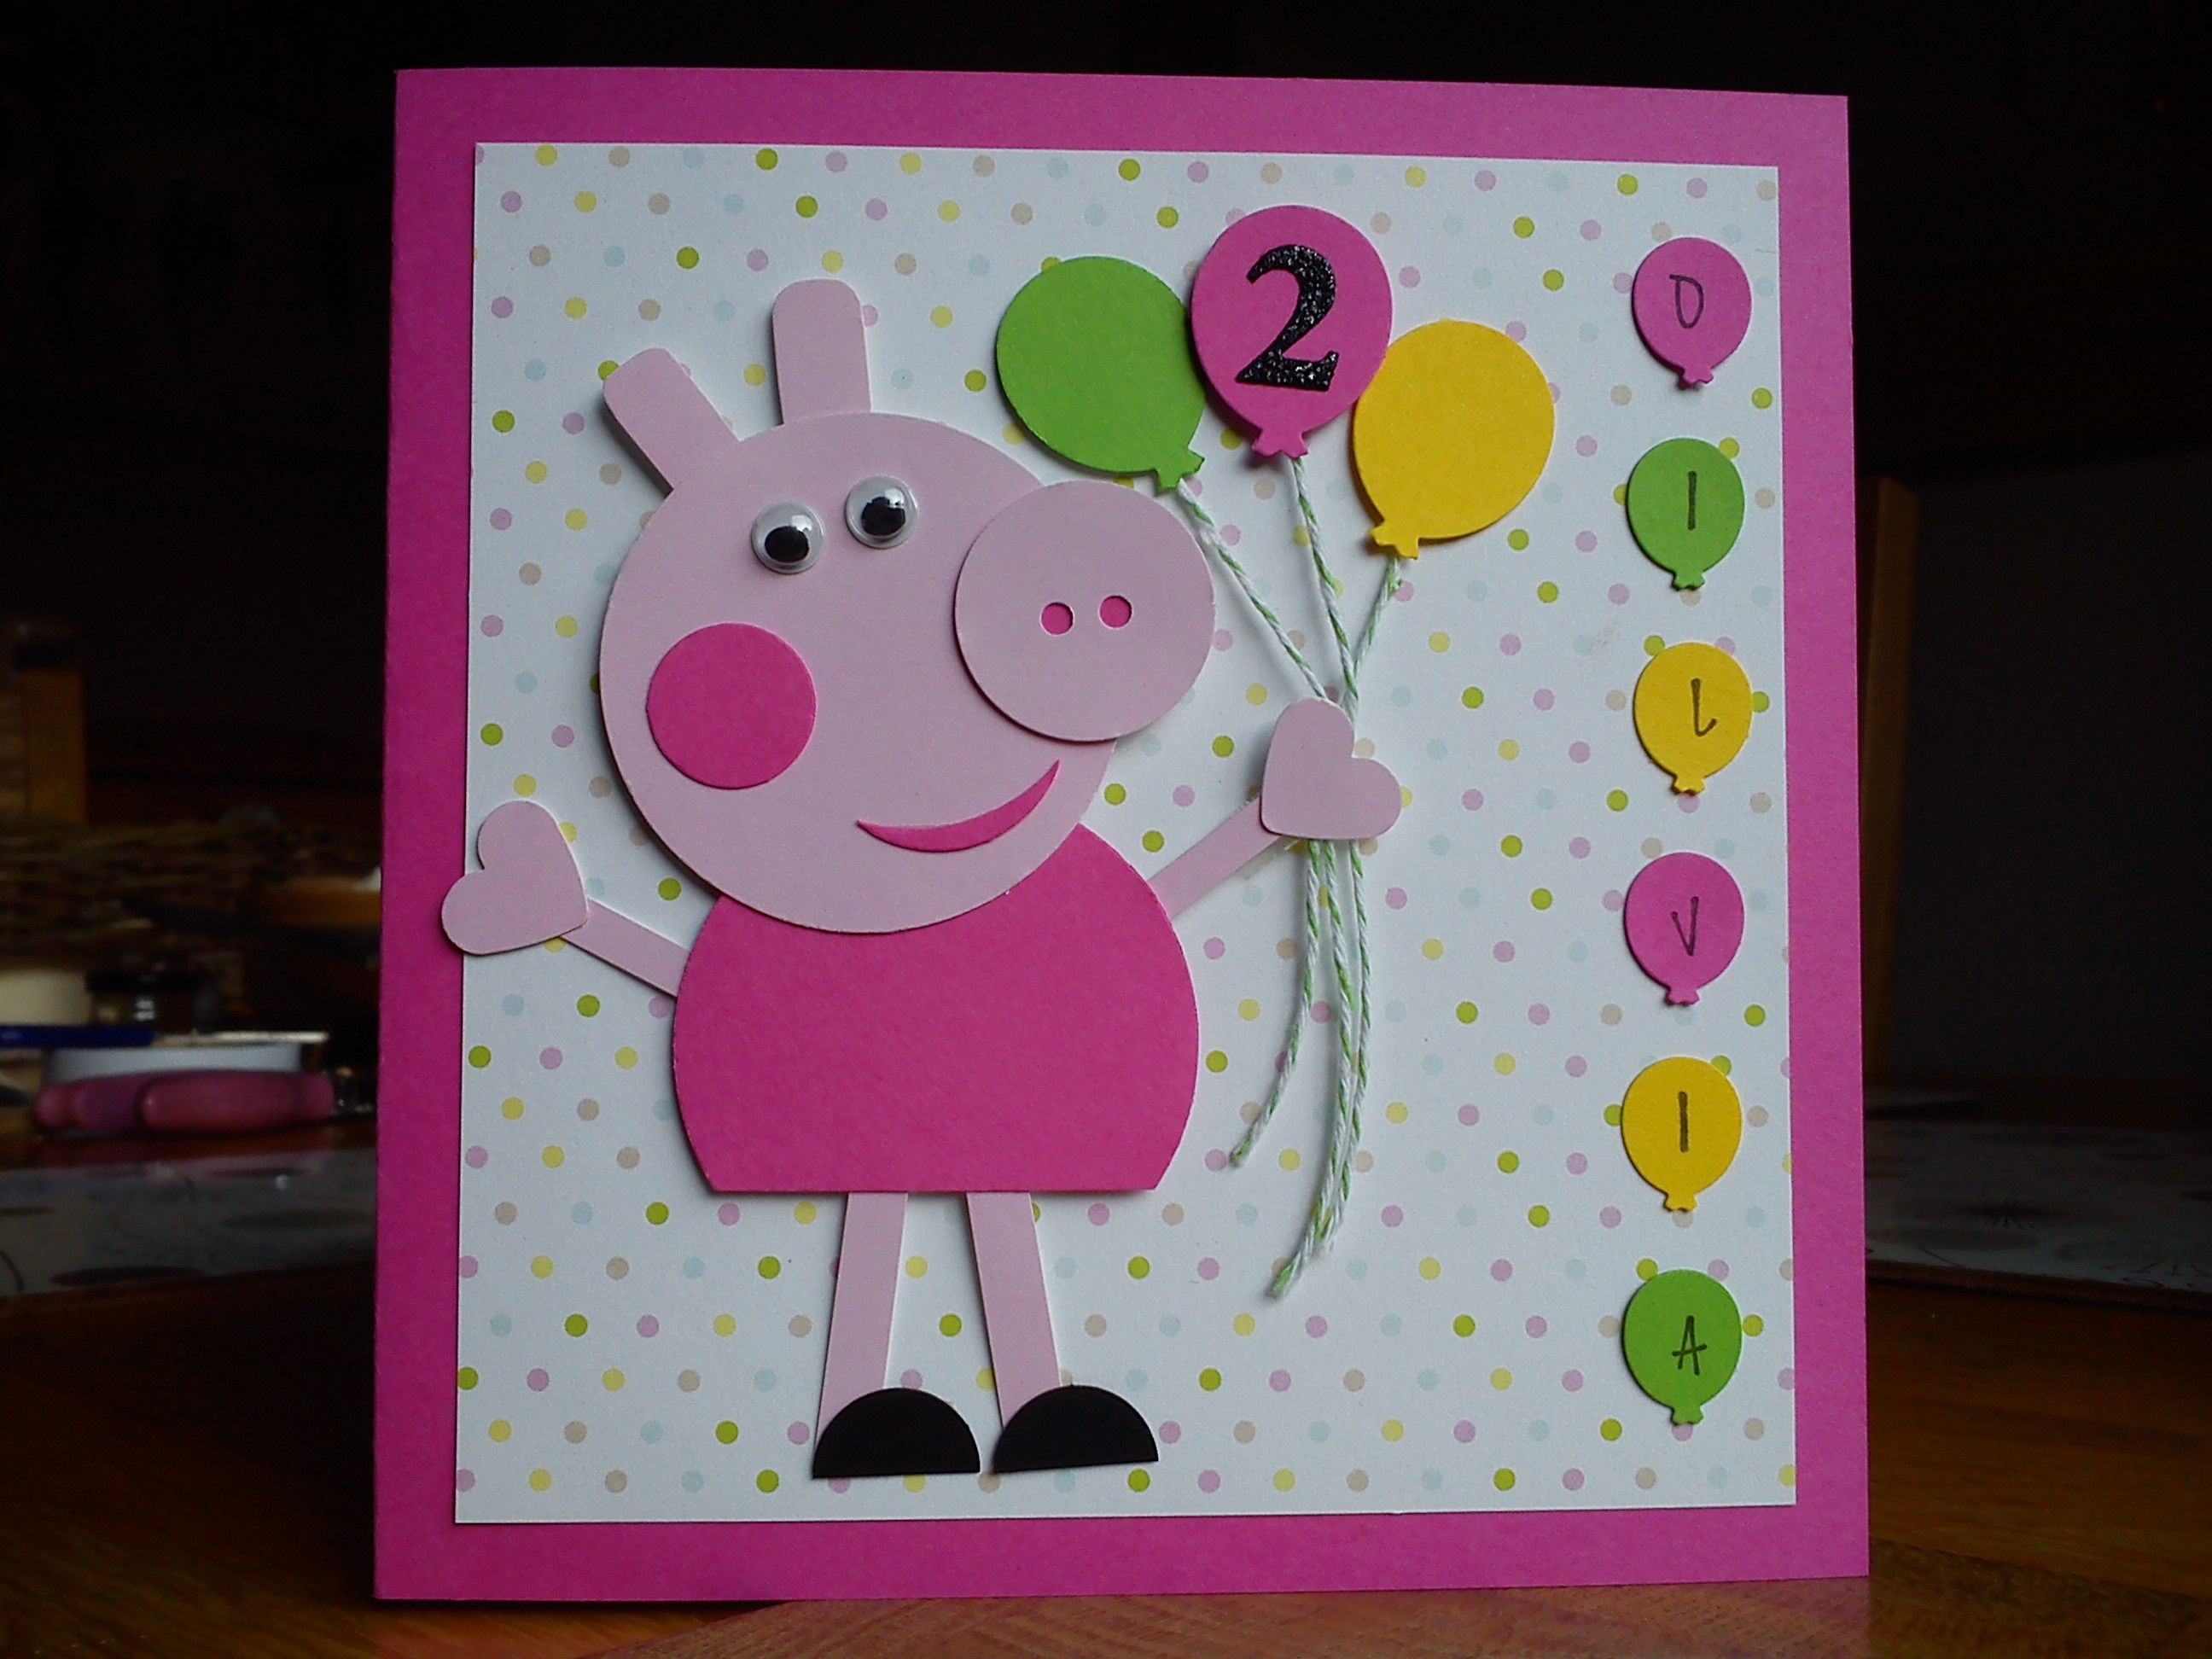 Handmade Peppa Pig Birthday Card I Made For My Friends Granddaughter